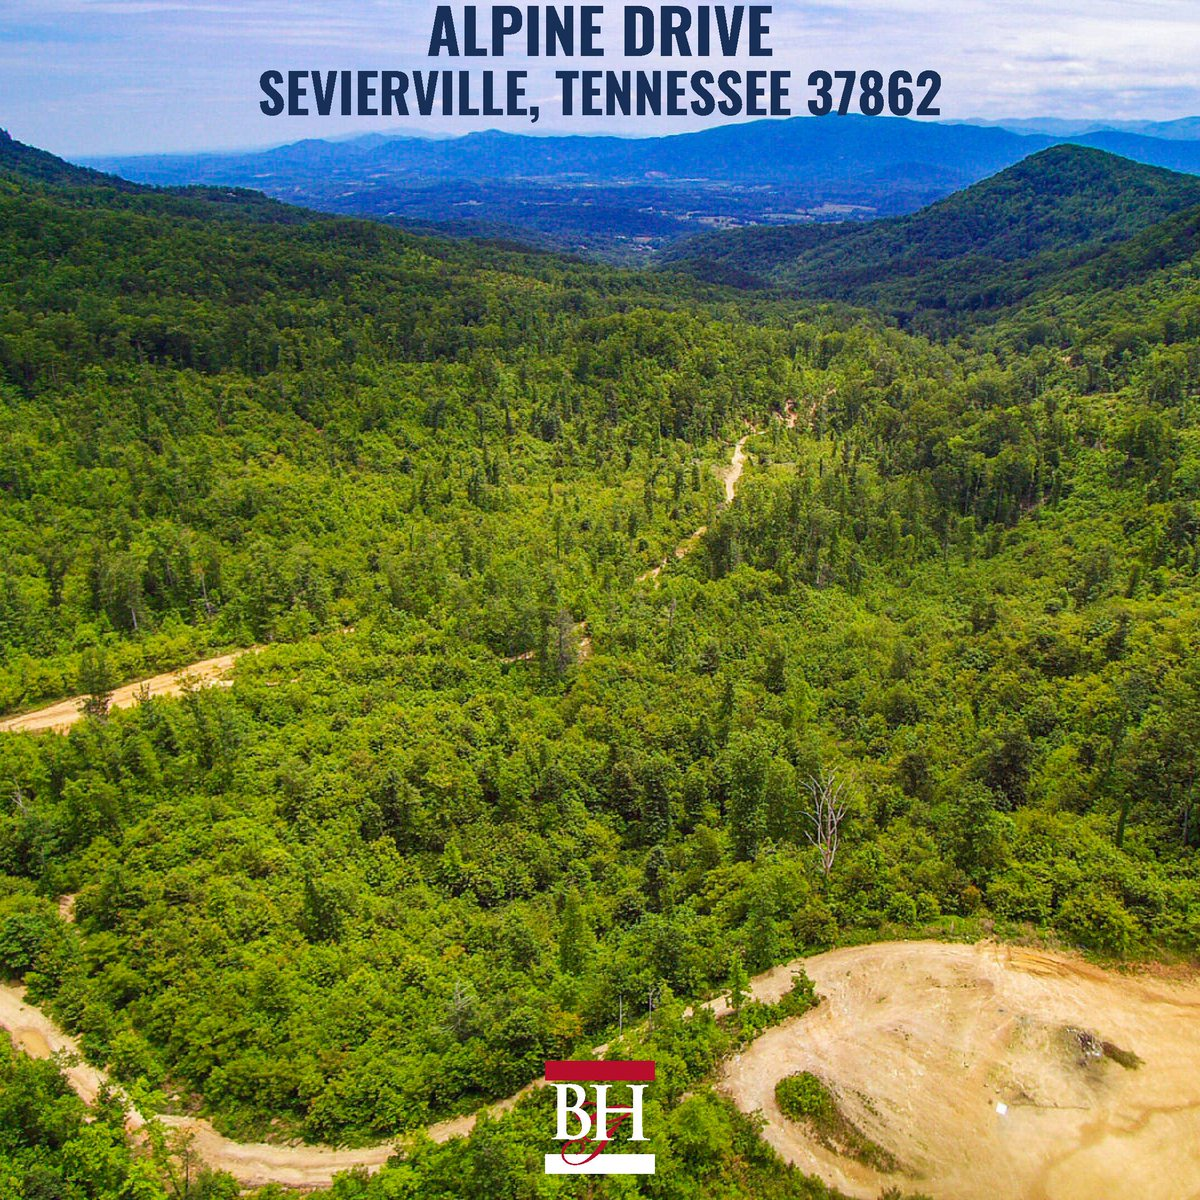 NEW Listing! Majestic acreage property perfect for a quiet mountain retreat. This property also has development potential as well.  For more details, click https://buff.ly/2wb4ASv  Billy Houston Group | 865.315.8244 #sevierville #seviervillerealestate  #easttnpic.twitter.com/vow7N5Yo1c